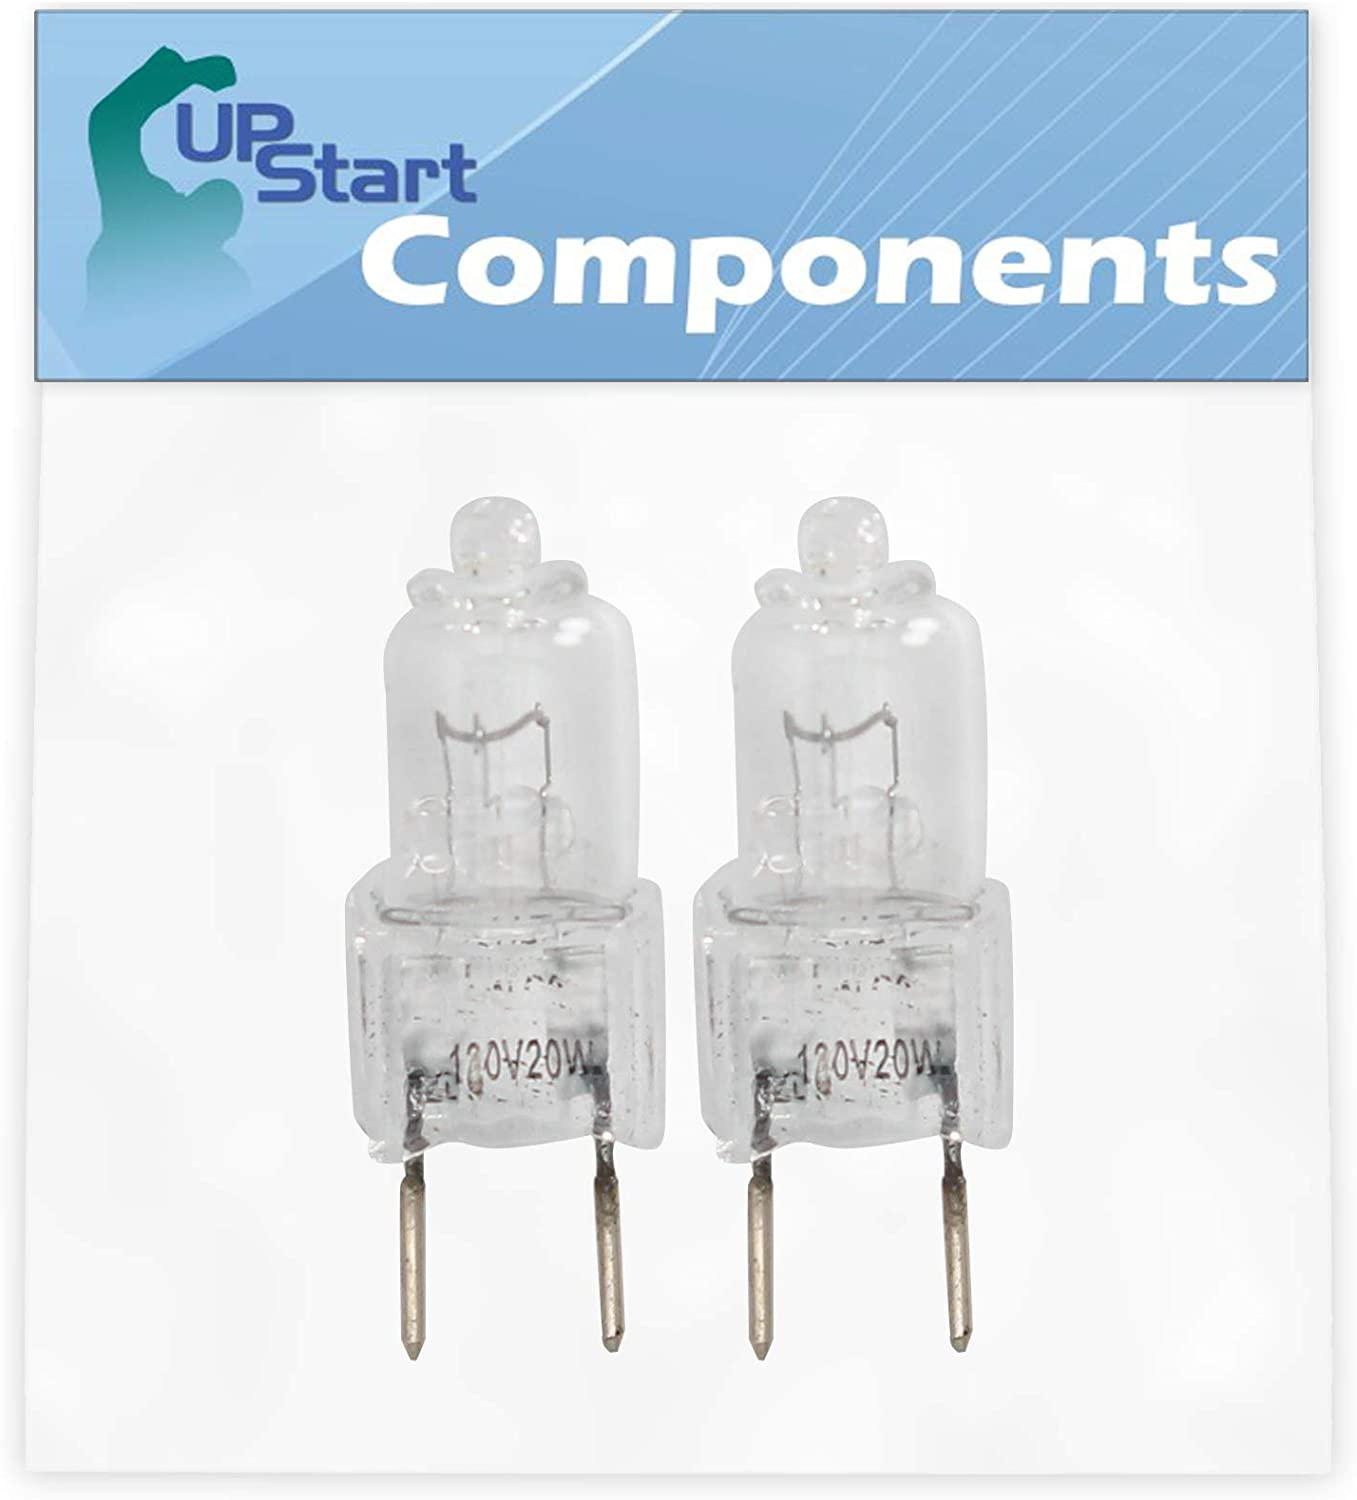 New product type 2-Pack 4713-001165 Microwave Halogen Replacement Inexpensive Bulb for Light